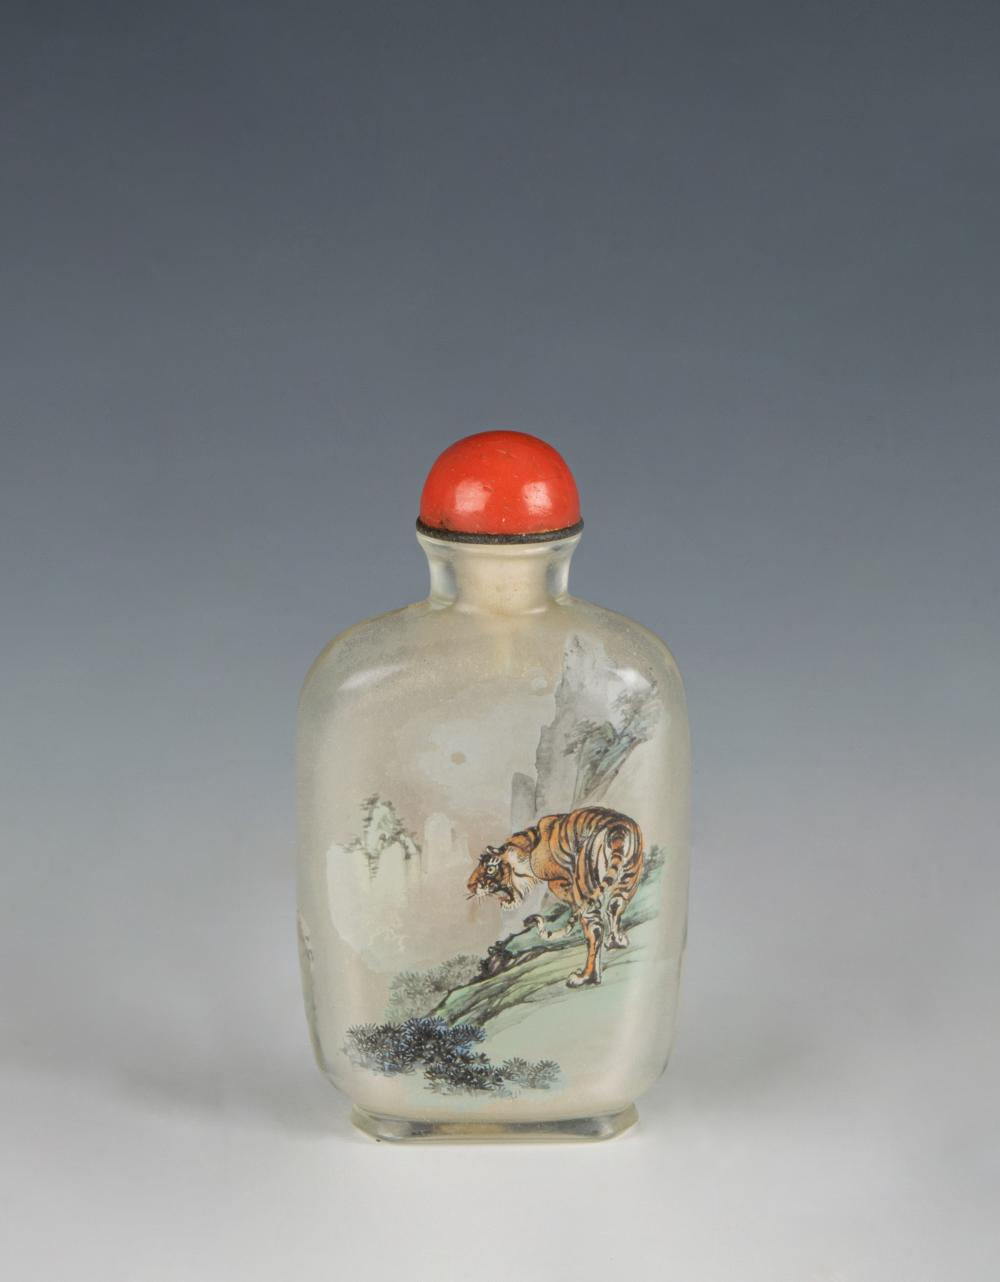 Lot 627: CHINESE INSIDE-PAINTED SNUFF BOTTLE WITH TIGER